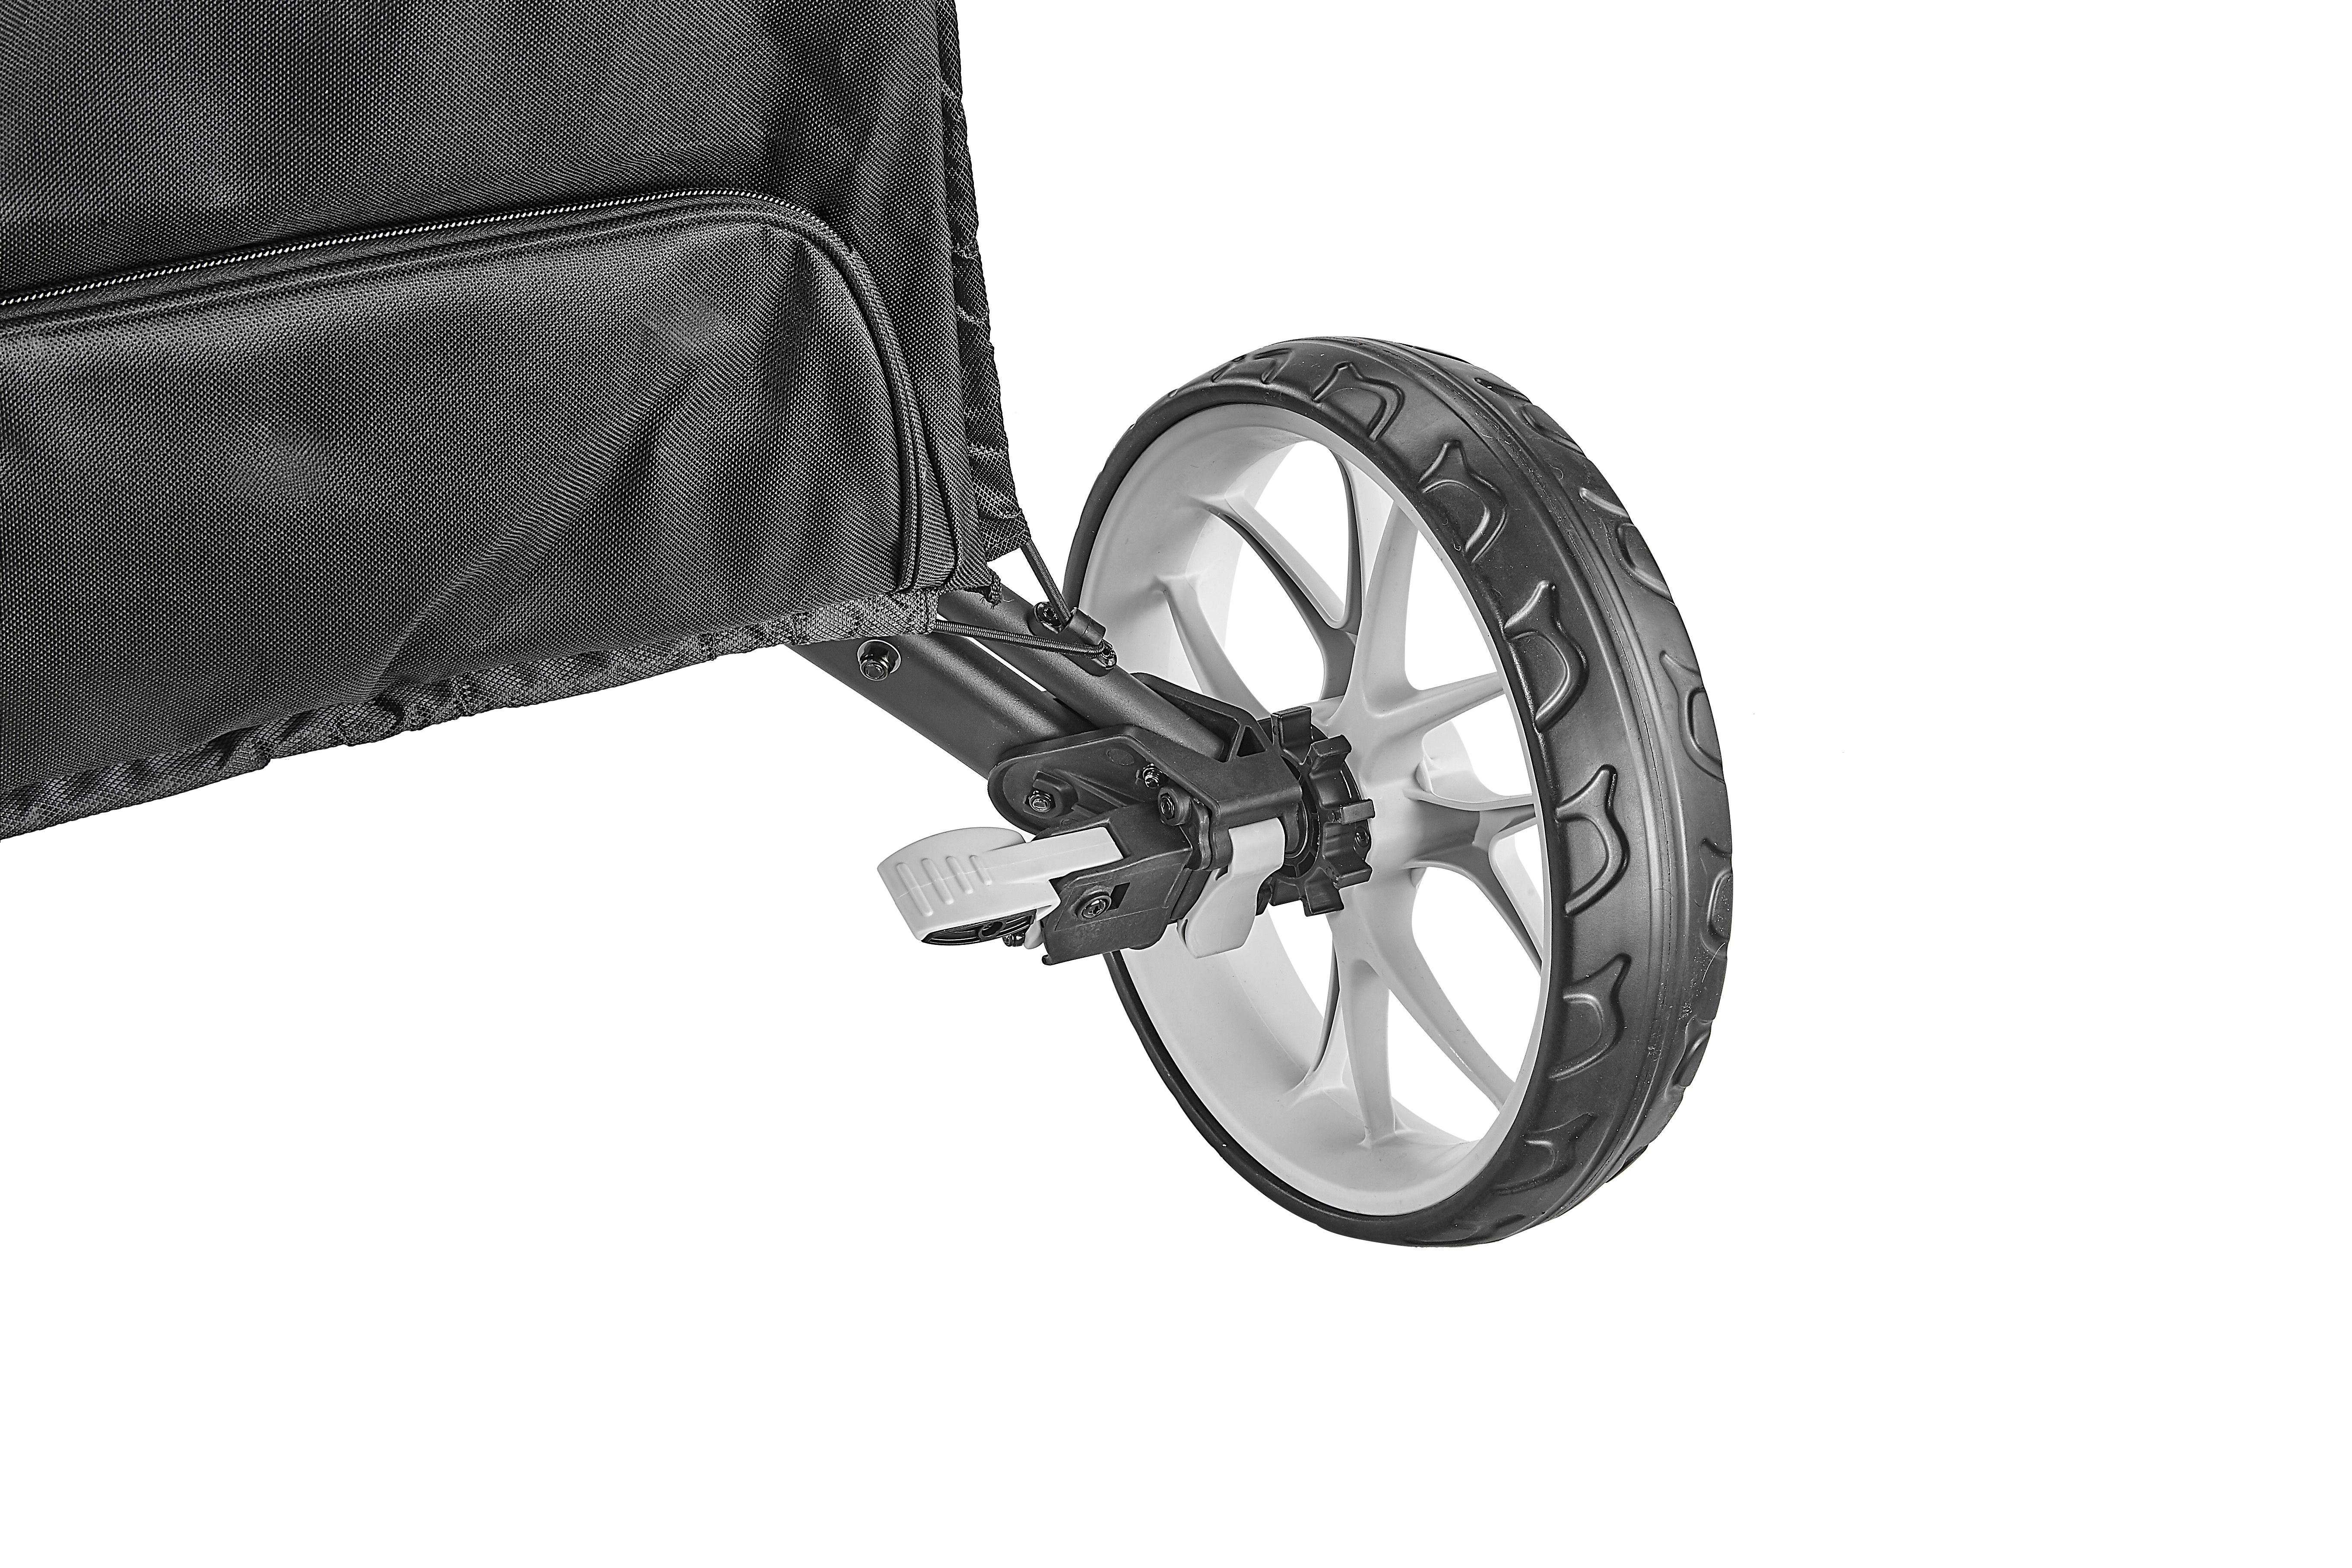 Easy to use foot brake system is included